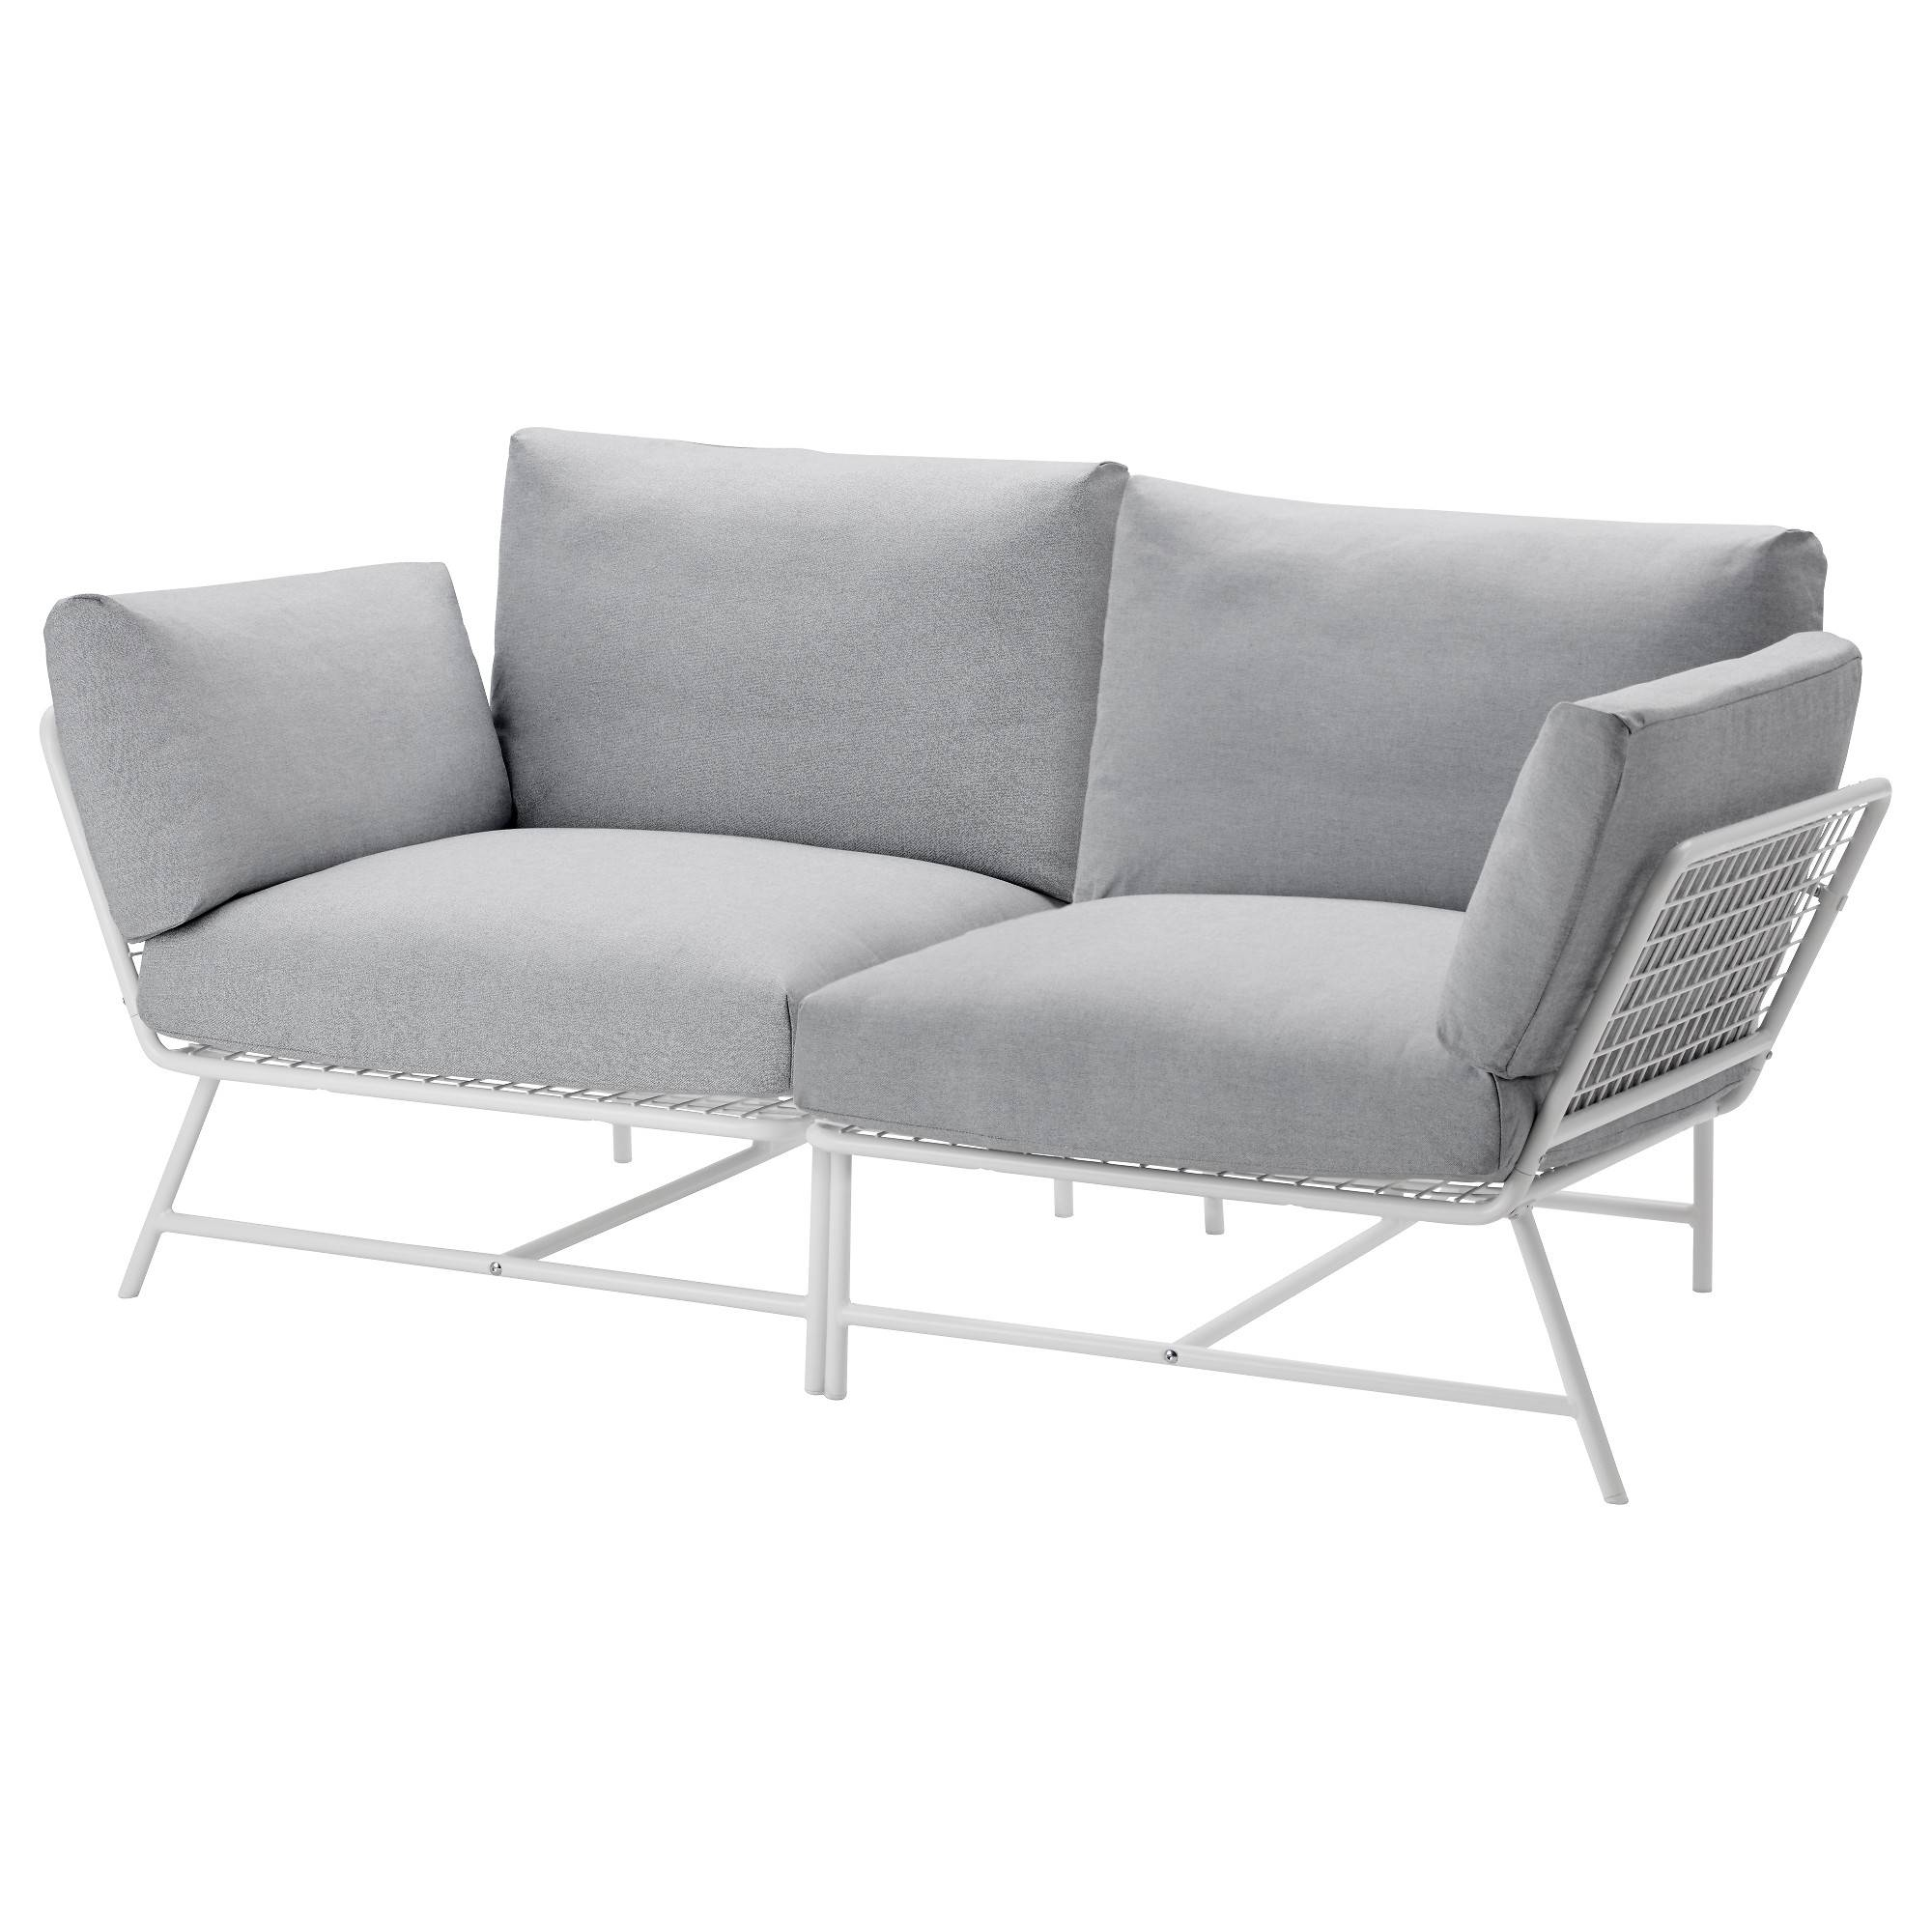 Ikea Ps 2017 2-Seat Sofa White/grey - Ikea for Single Seat Sofa Chairs (Image 5 of 15)